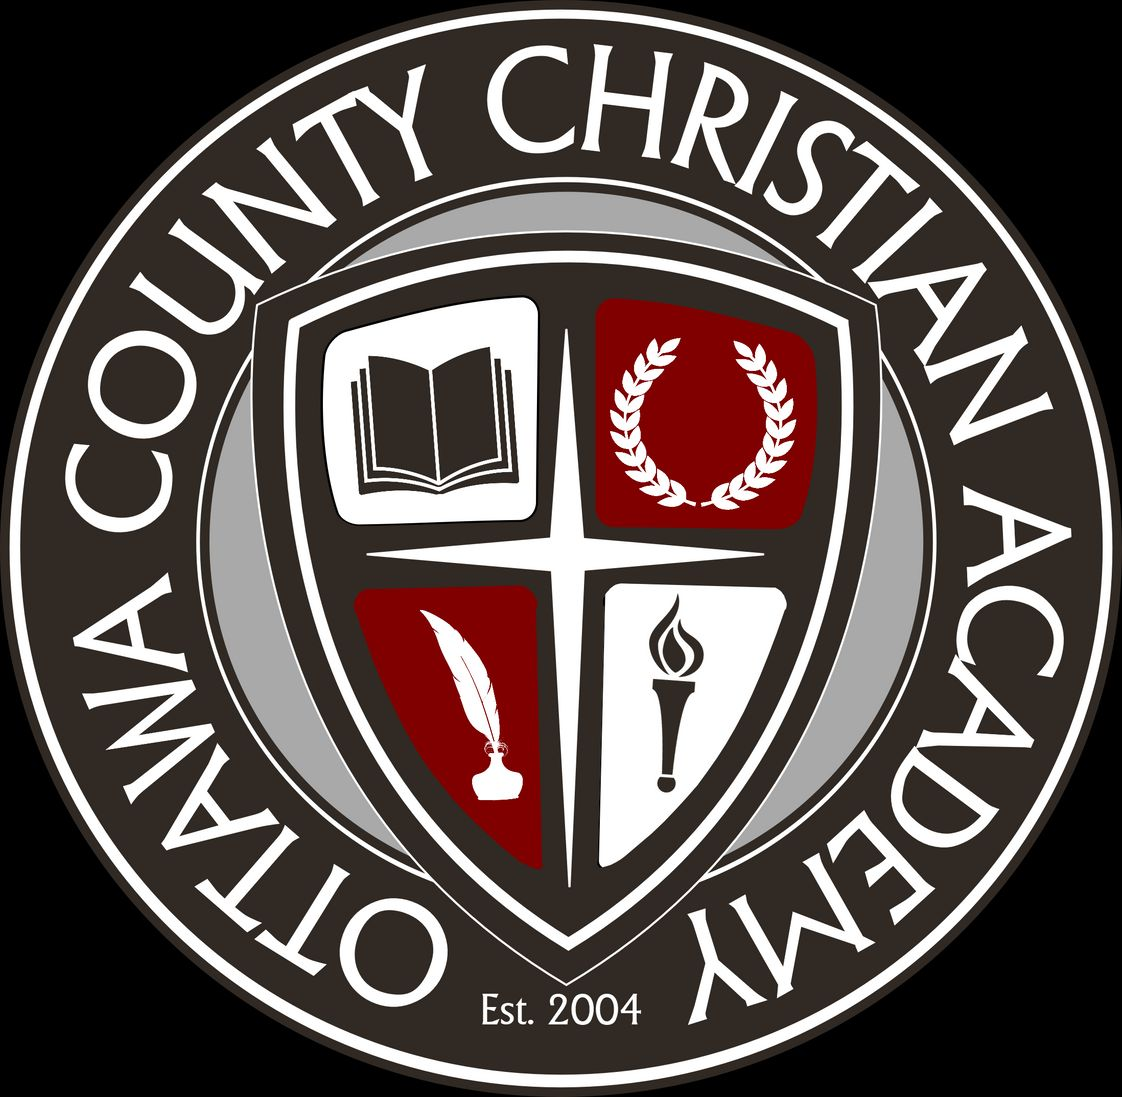 Ottawa County Christian Academy Photo